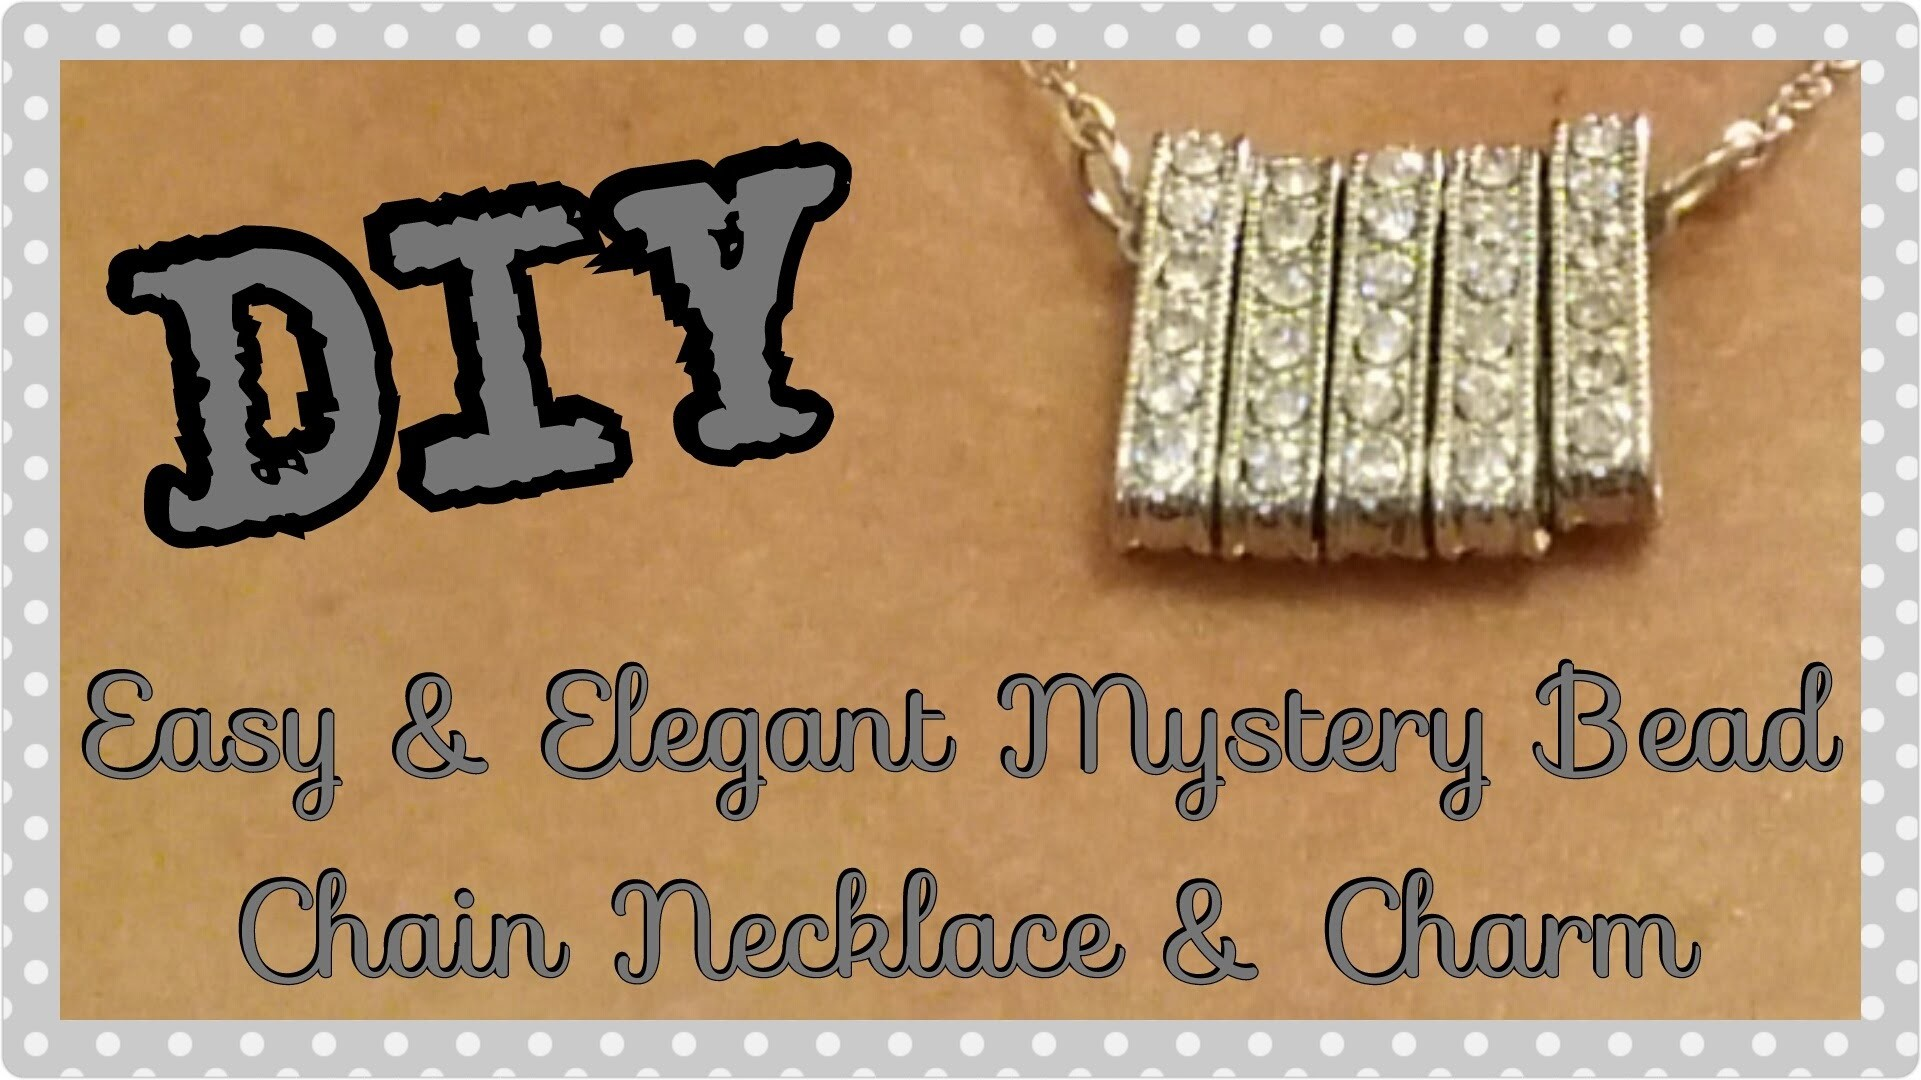 DIY Easy & Elegant Mystery Bead Chain Necklace & Charm